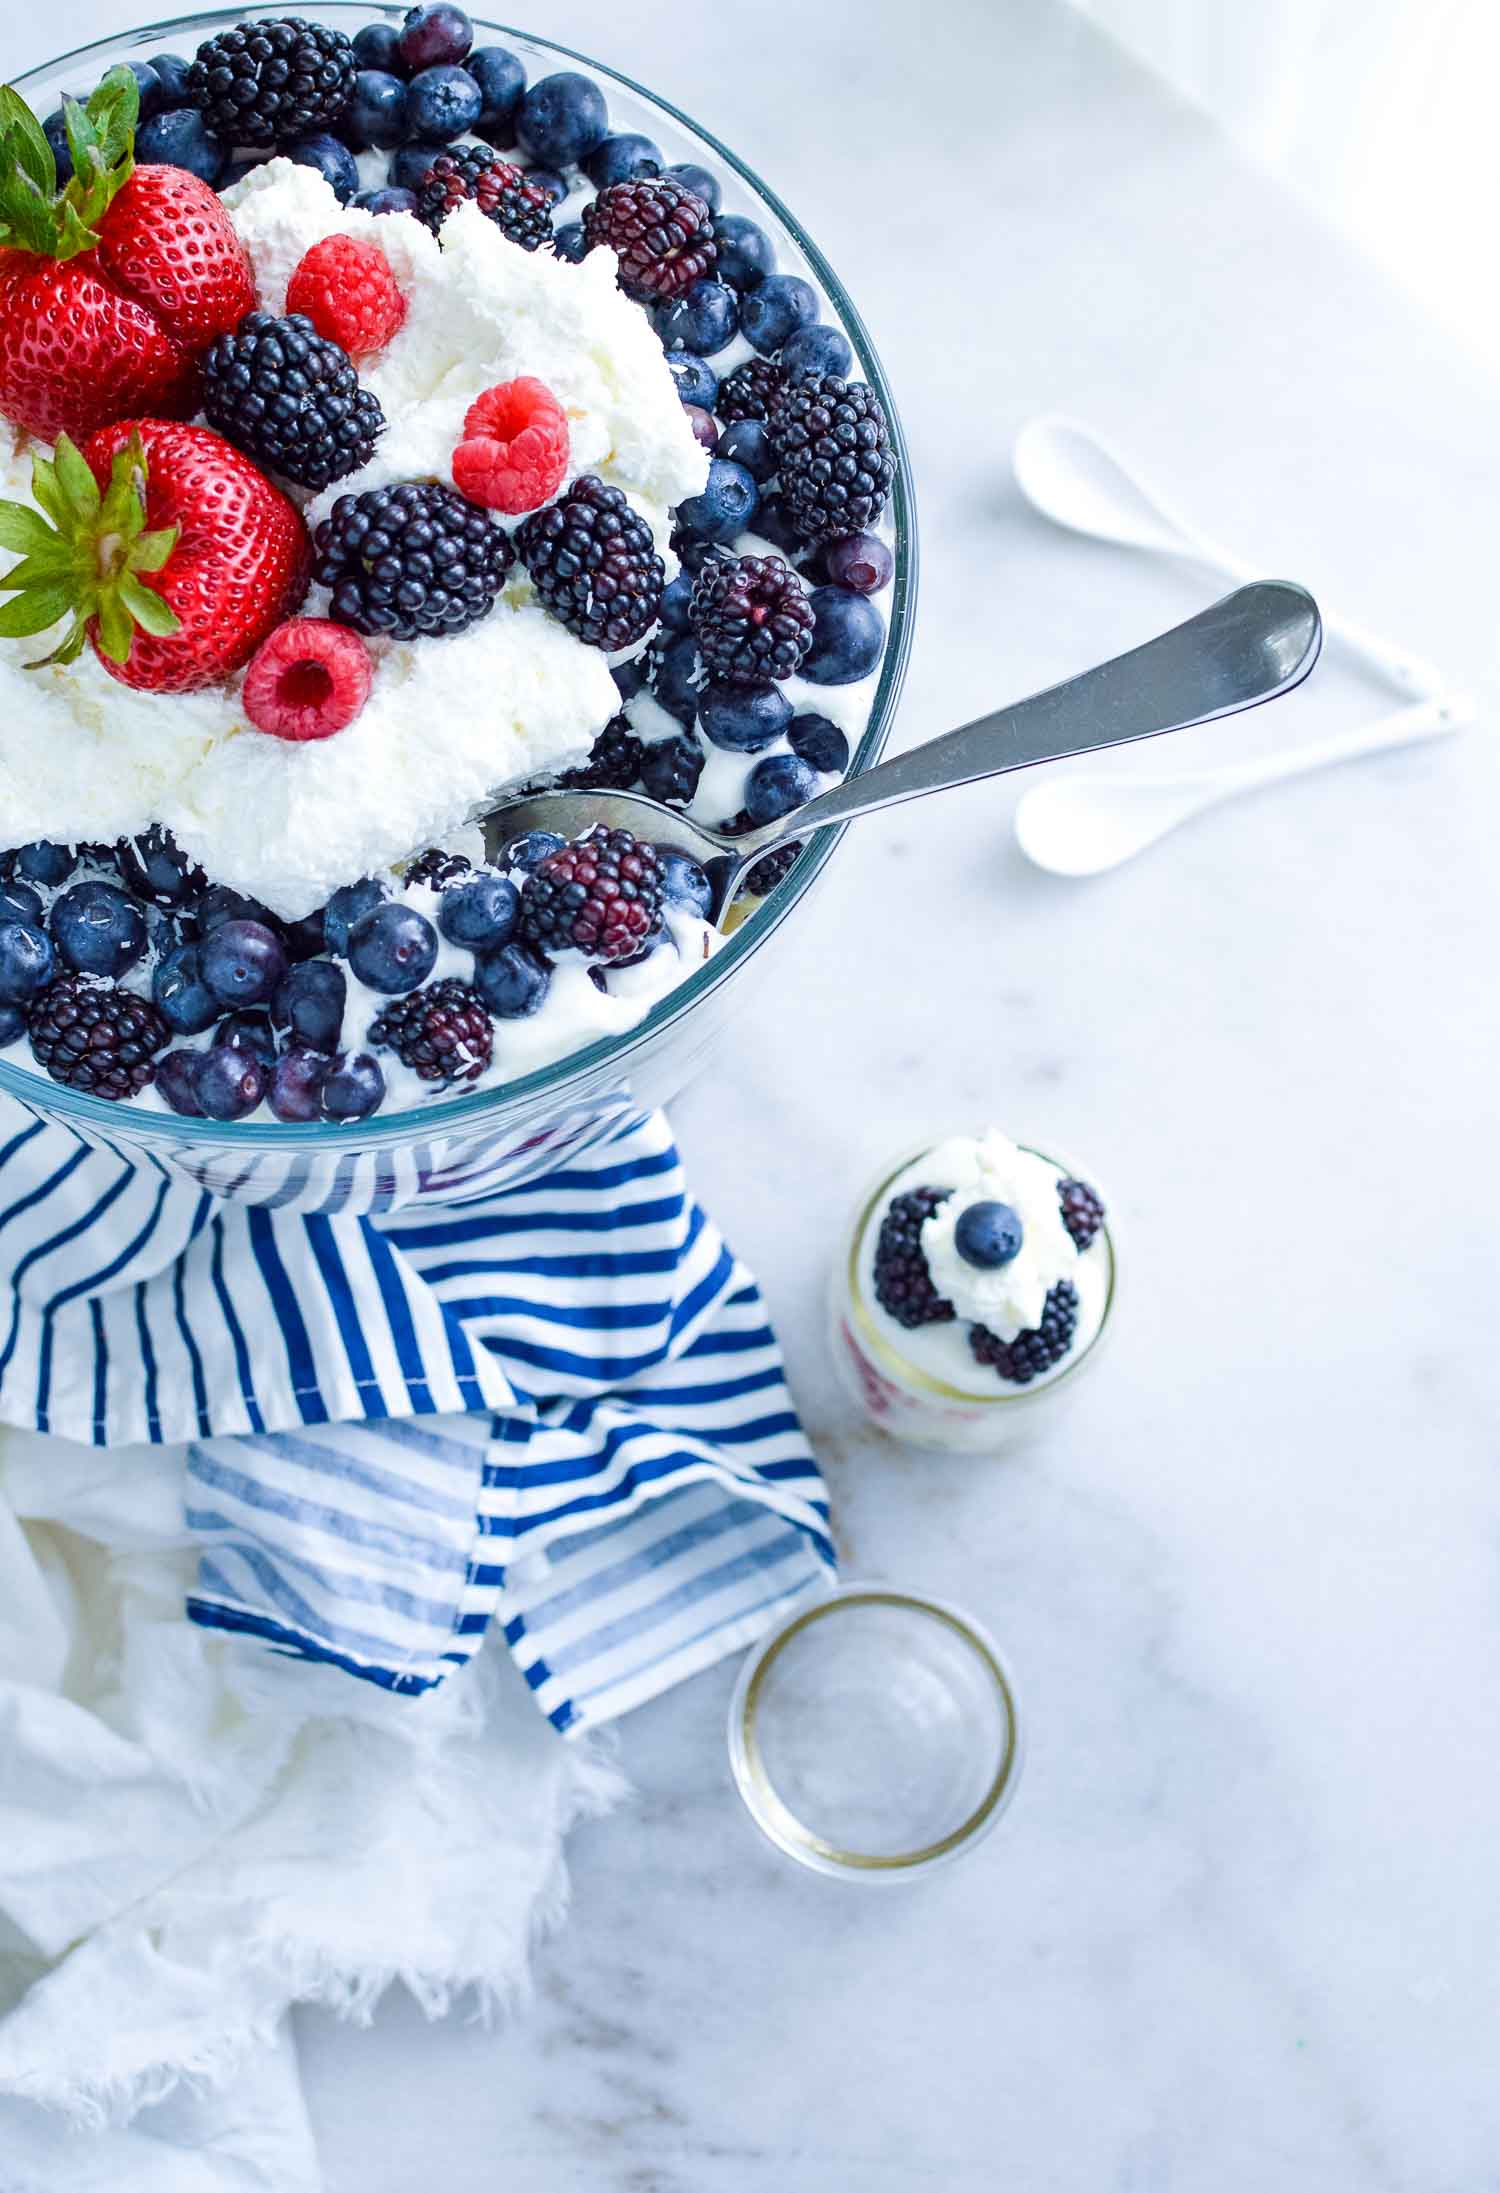 A clear glass dish filled with cake, berries, and cream with a metal spoon in it with blue and white towel around the bottom, two white spoons and two glasses - one full and one empty.